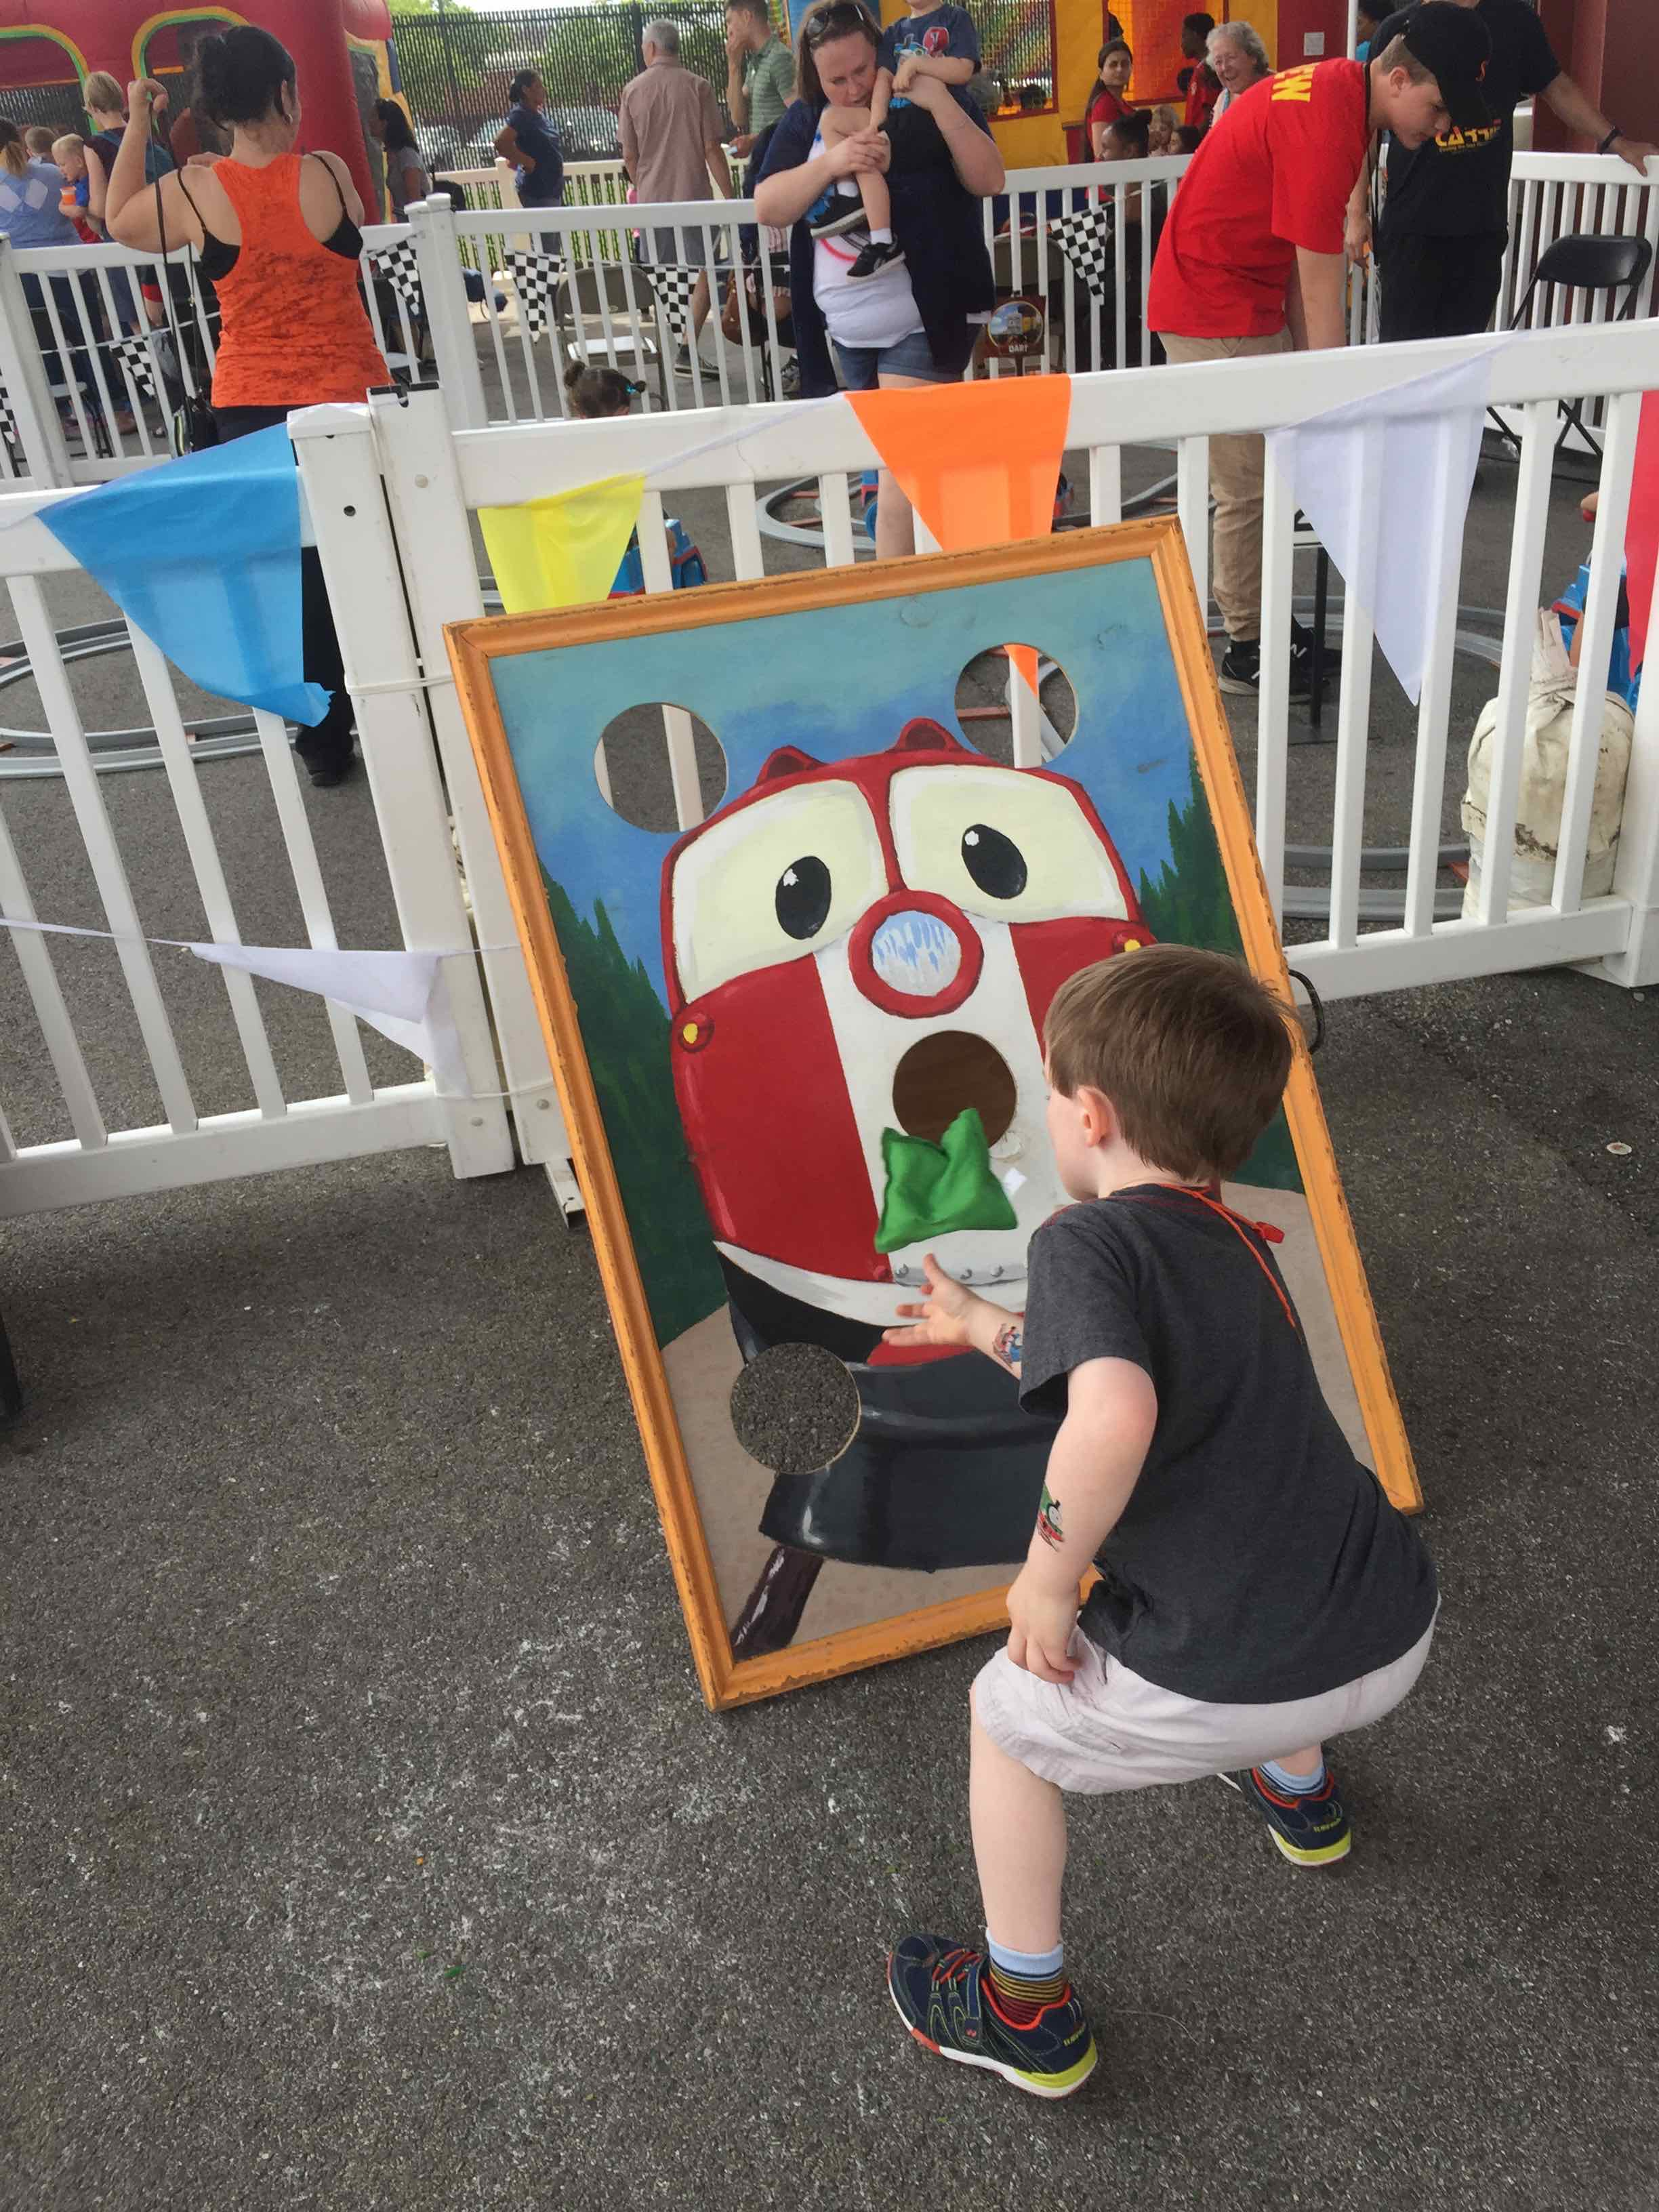 Photo: Child tossing a beanbag into a hole of a picture of a train.